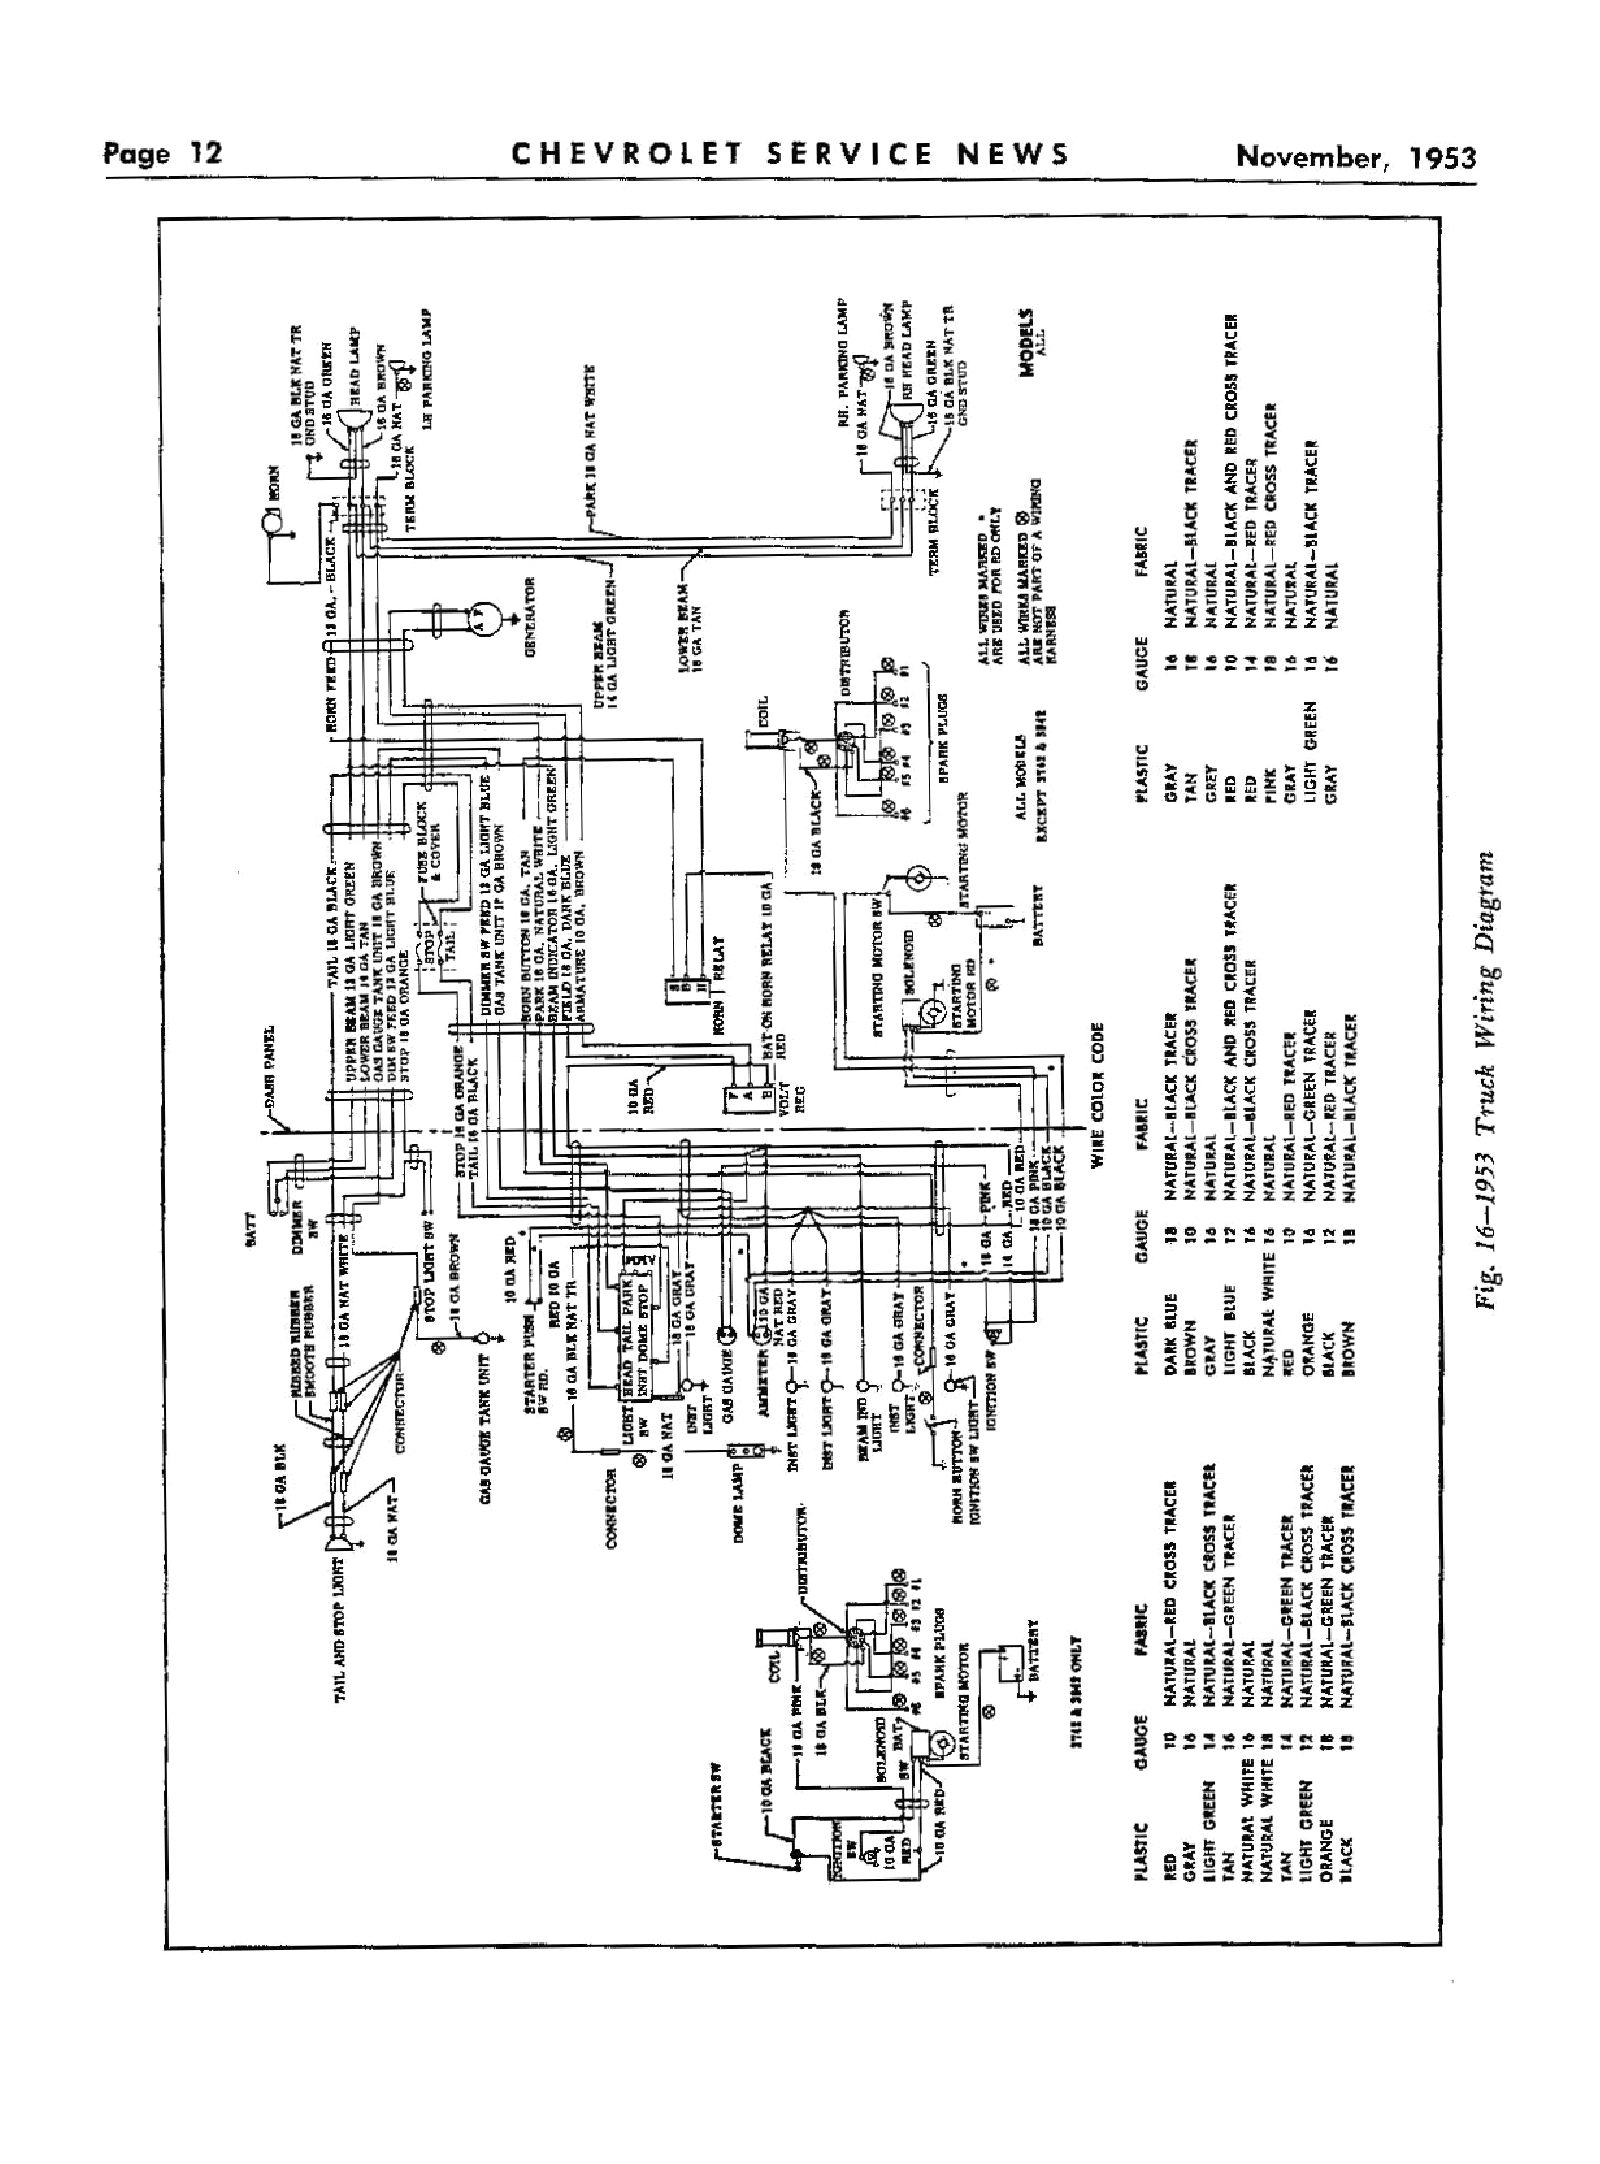 Freightliner J1939 Wiring Diagram furthermore 1951 Ford Custom Deluxe Wiring Diagram further 72 Chevelle Wiring Diagram also 1126890 65 Ford F100 Wiring Diagrams besides 75 Cj5 Wiring Harness Replacement 12456. on international truck horn relay